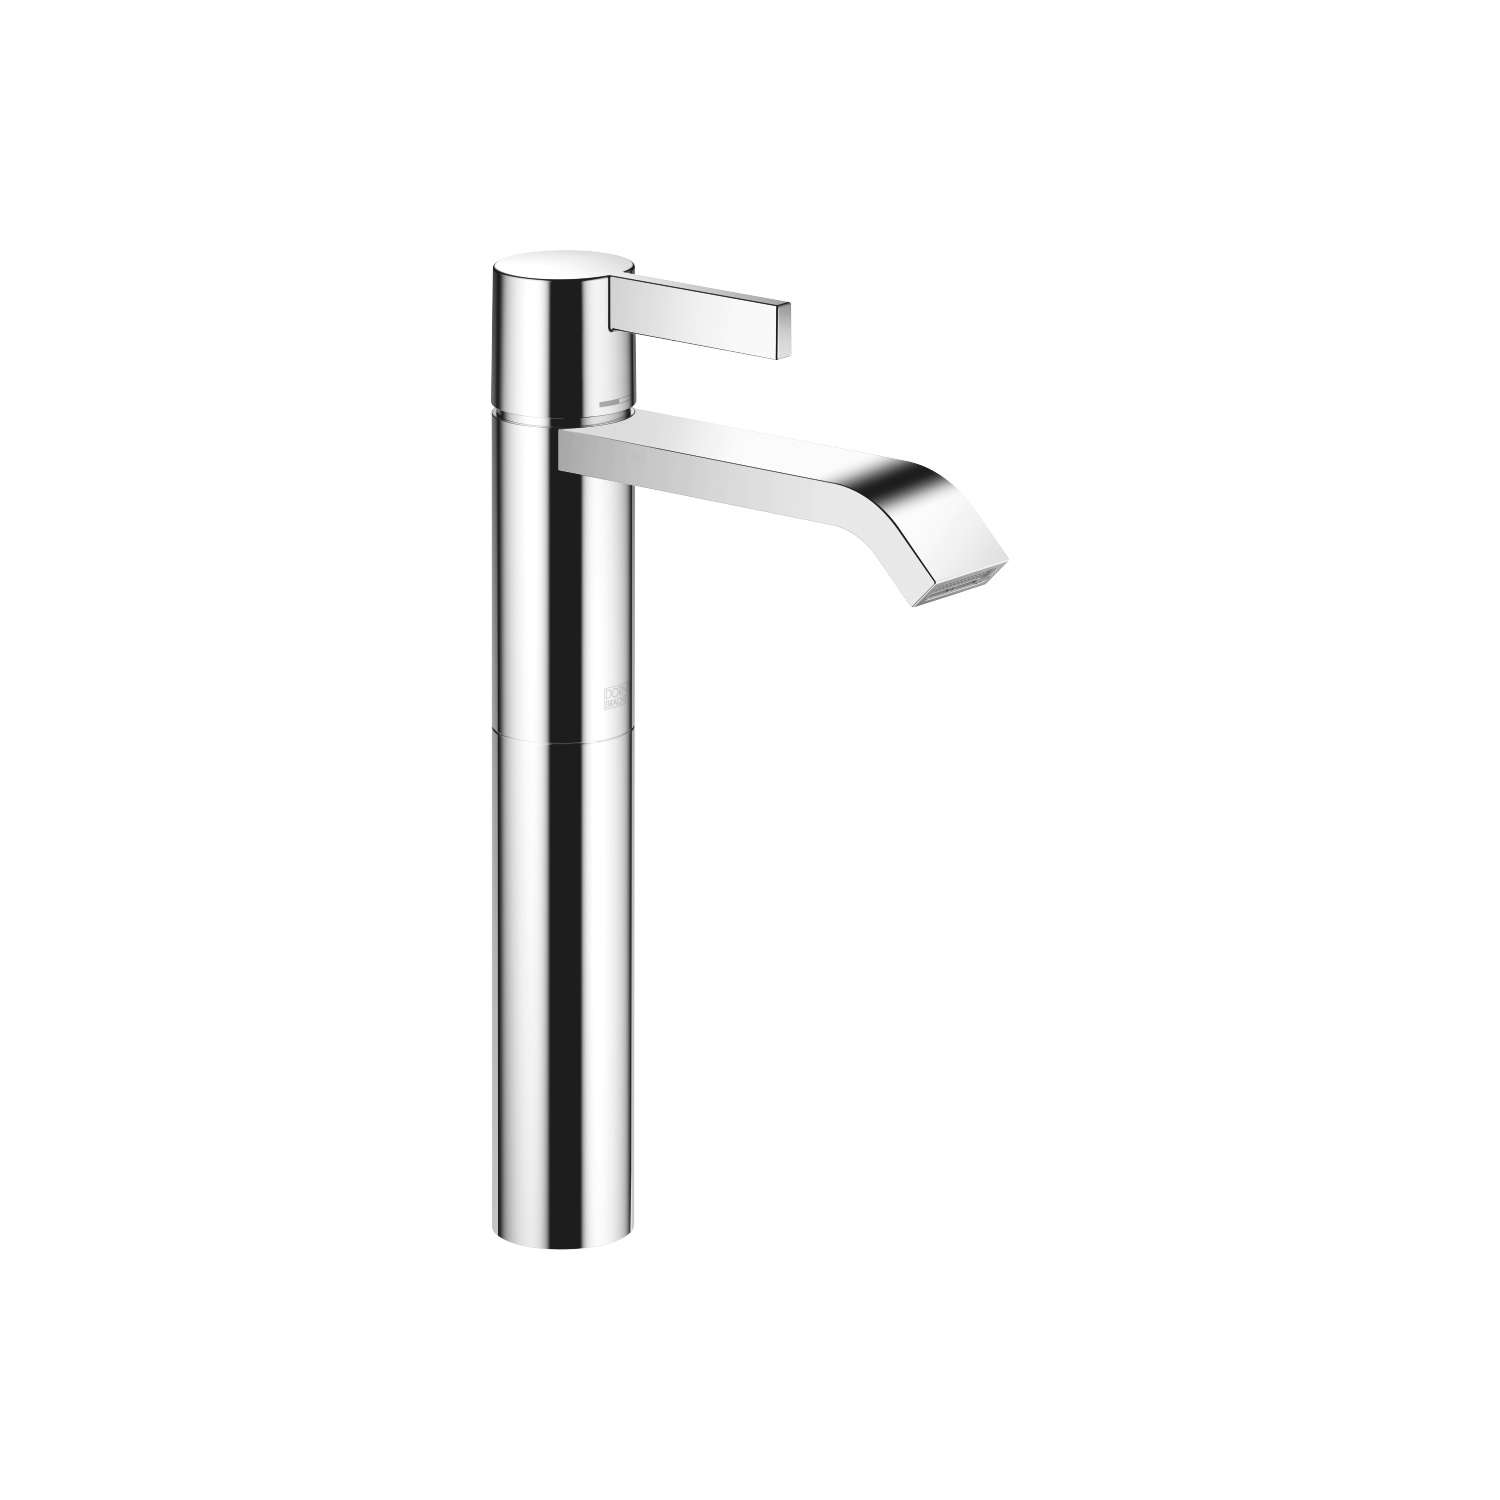 Single-lever basin mixer with raised base without pop-up waste - polished chrome